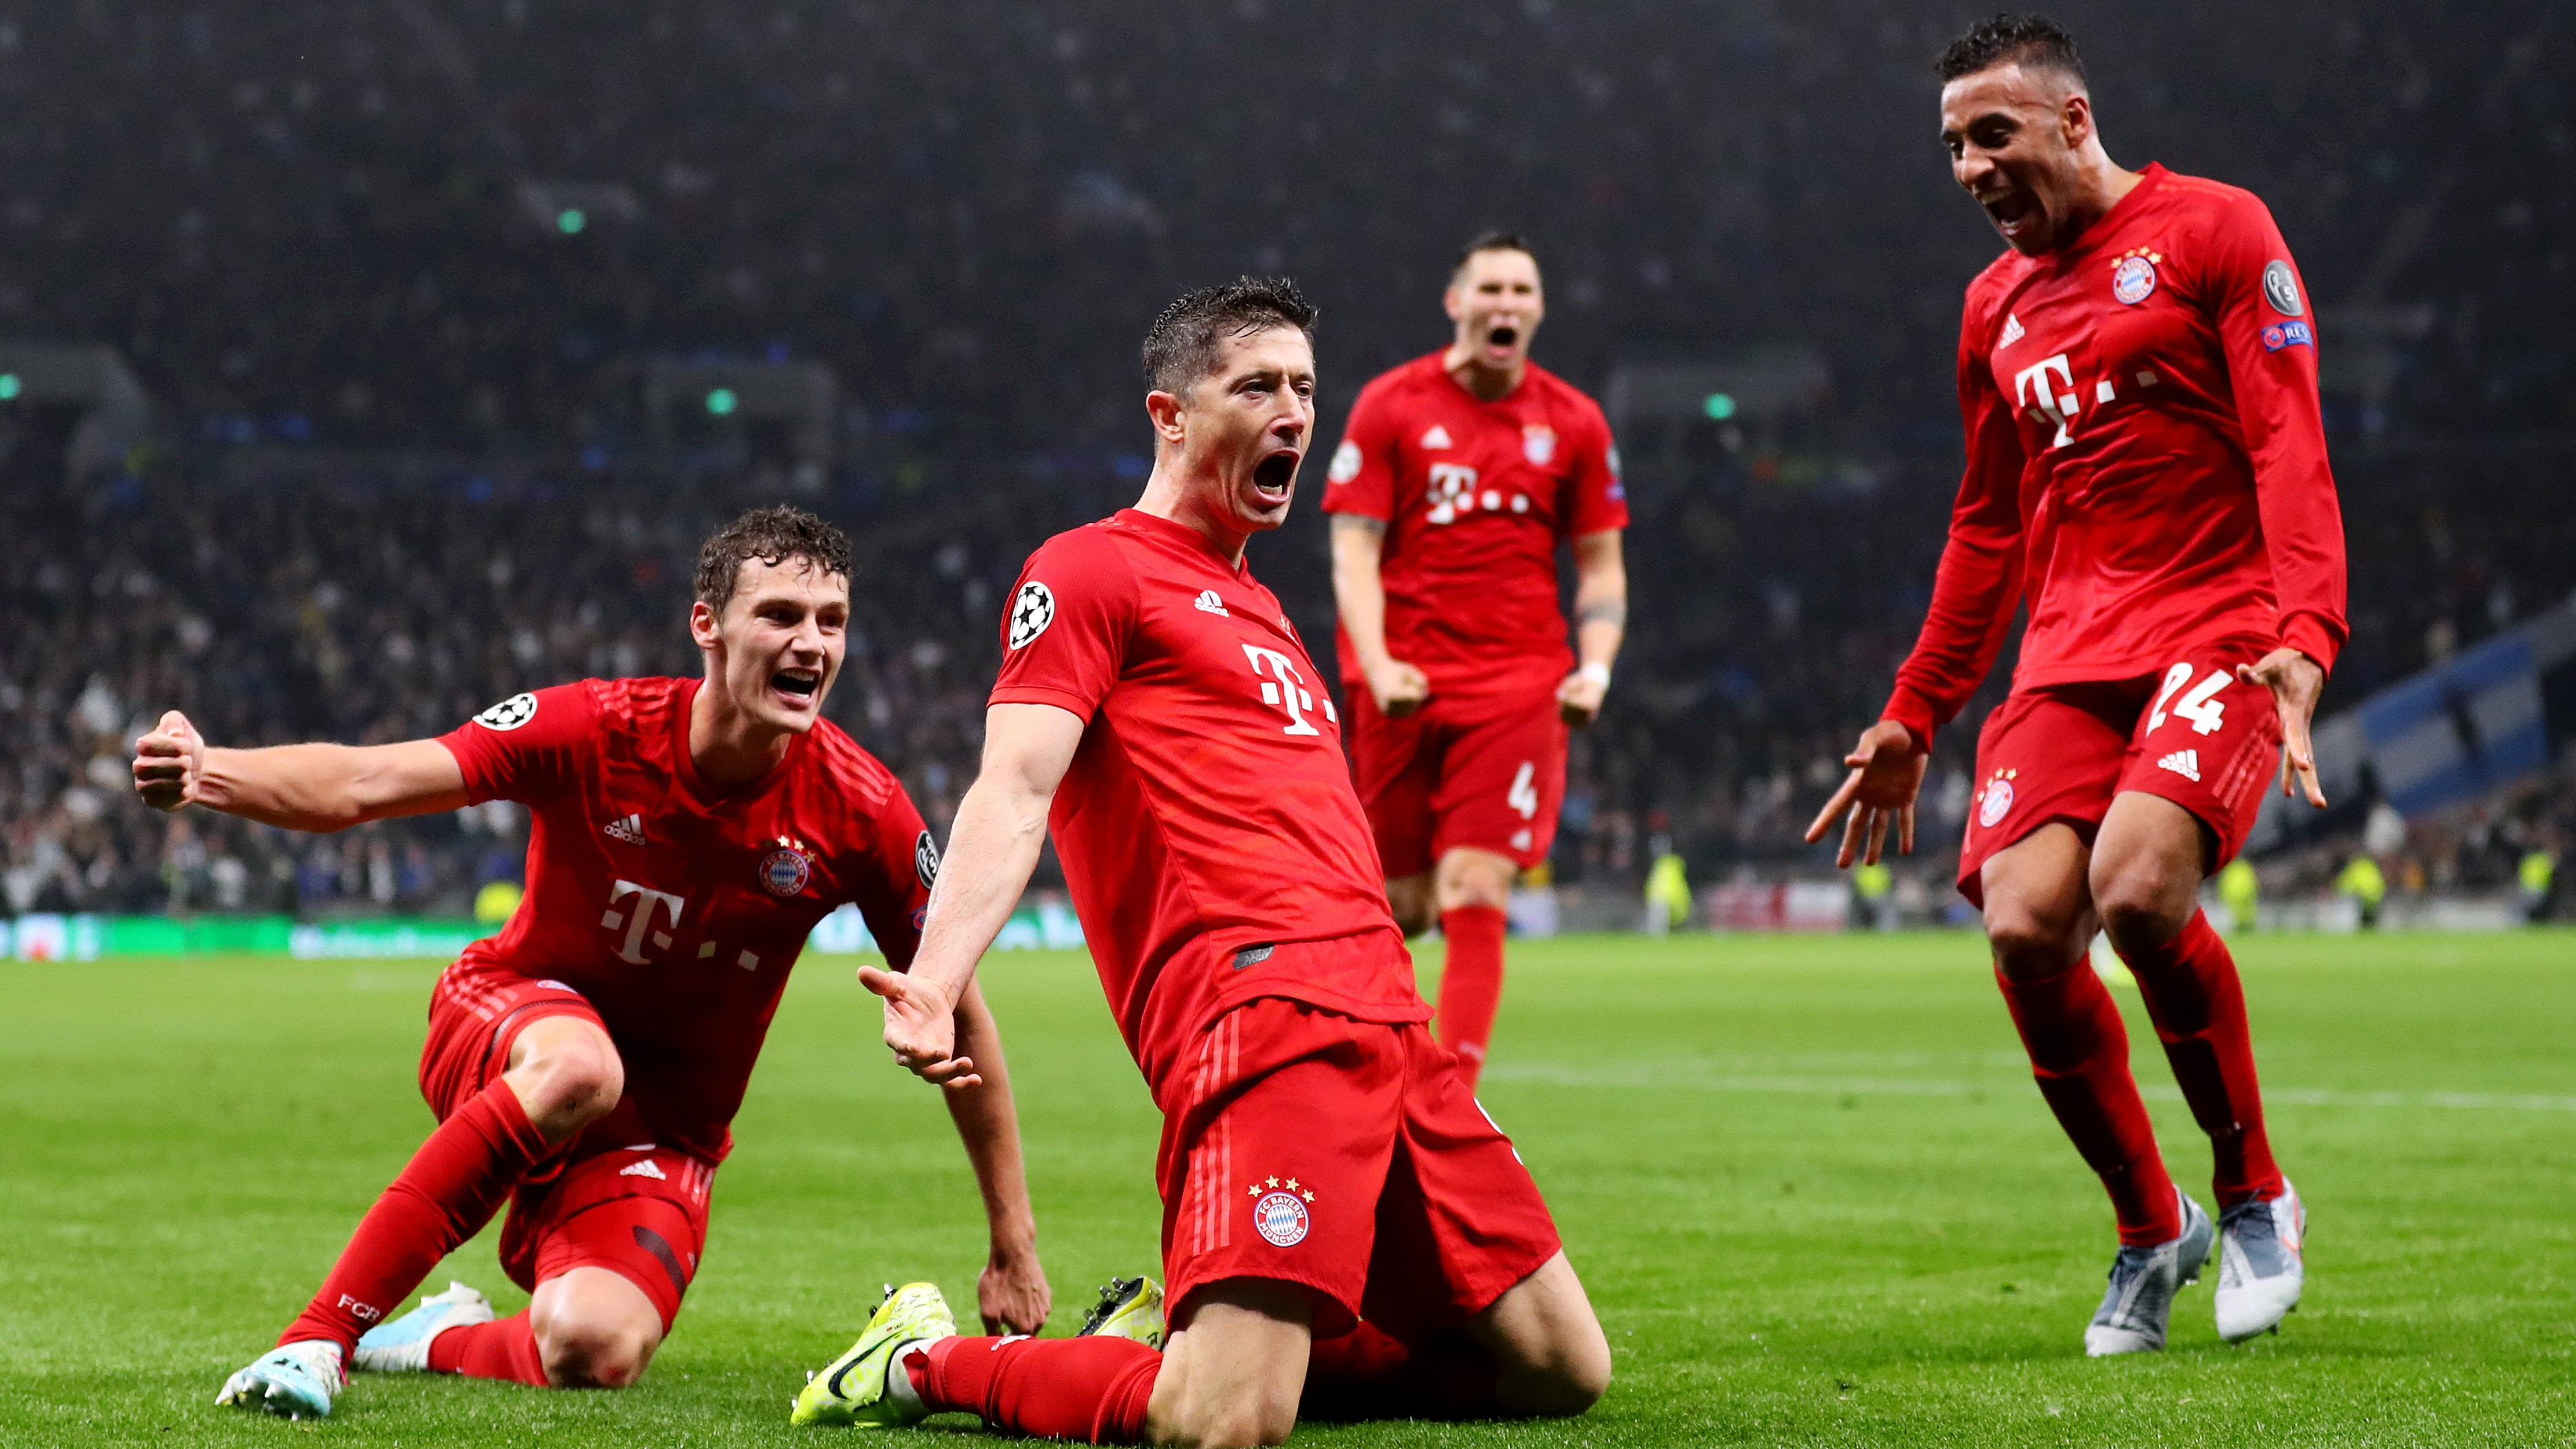 Lyon Vs Bayern Munich Live Stream How To Watch Reddit Online Free Champions League Semi Final At 103 West On Thu Aug 20th 2020 1 00 Am